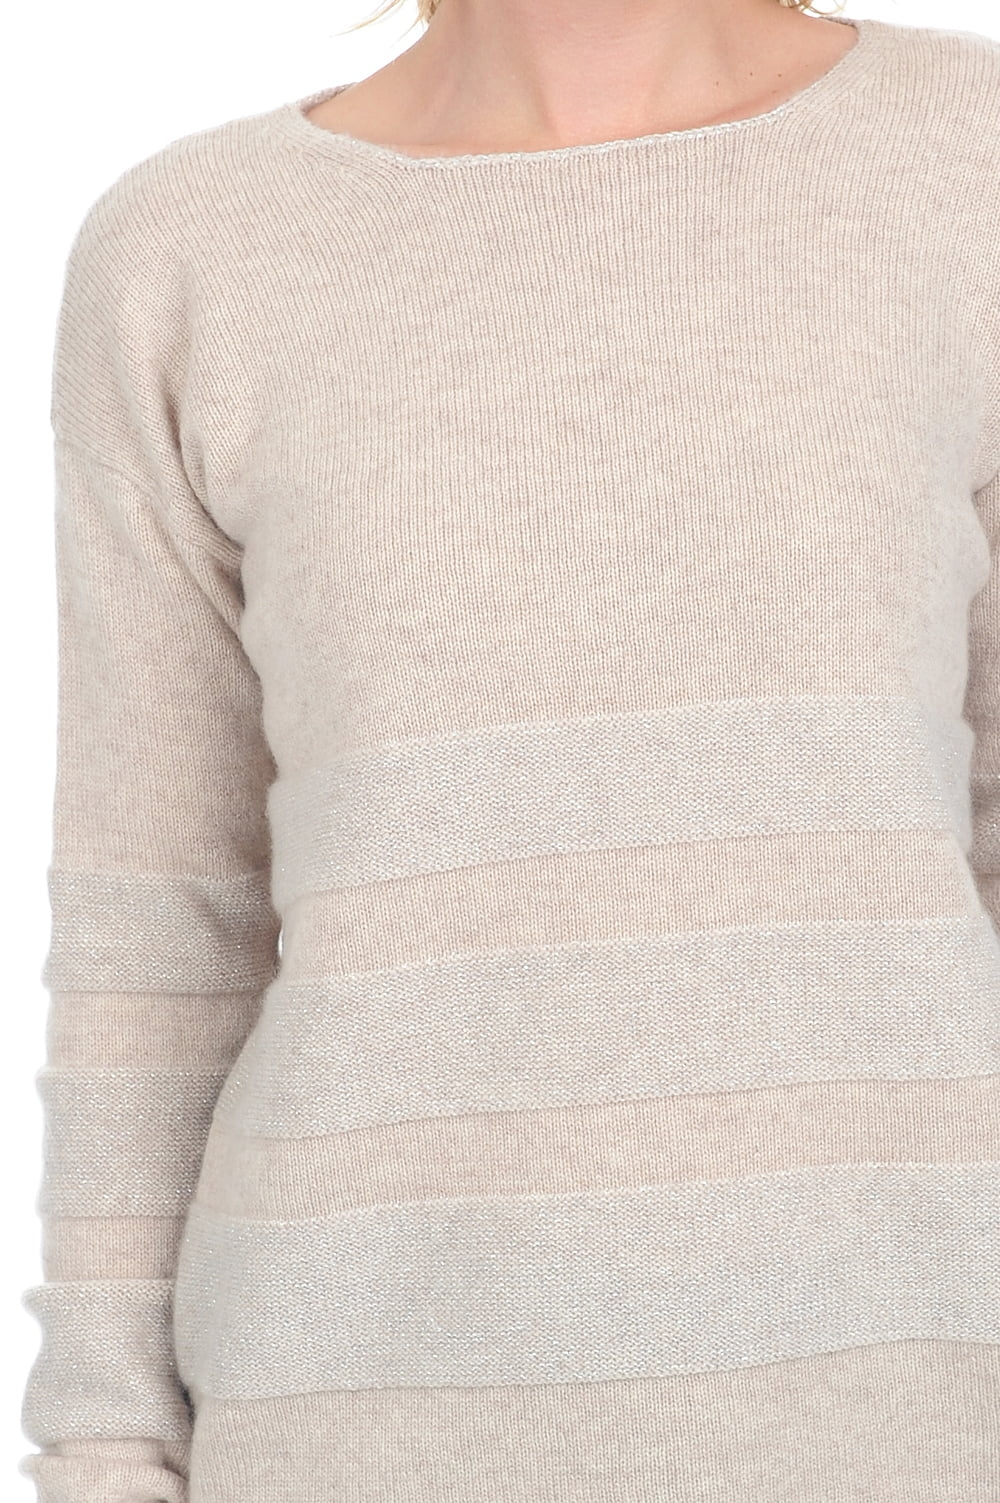 Cashmere ladies chunky sweater marylou vintage beige chine xl